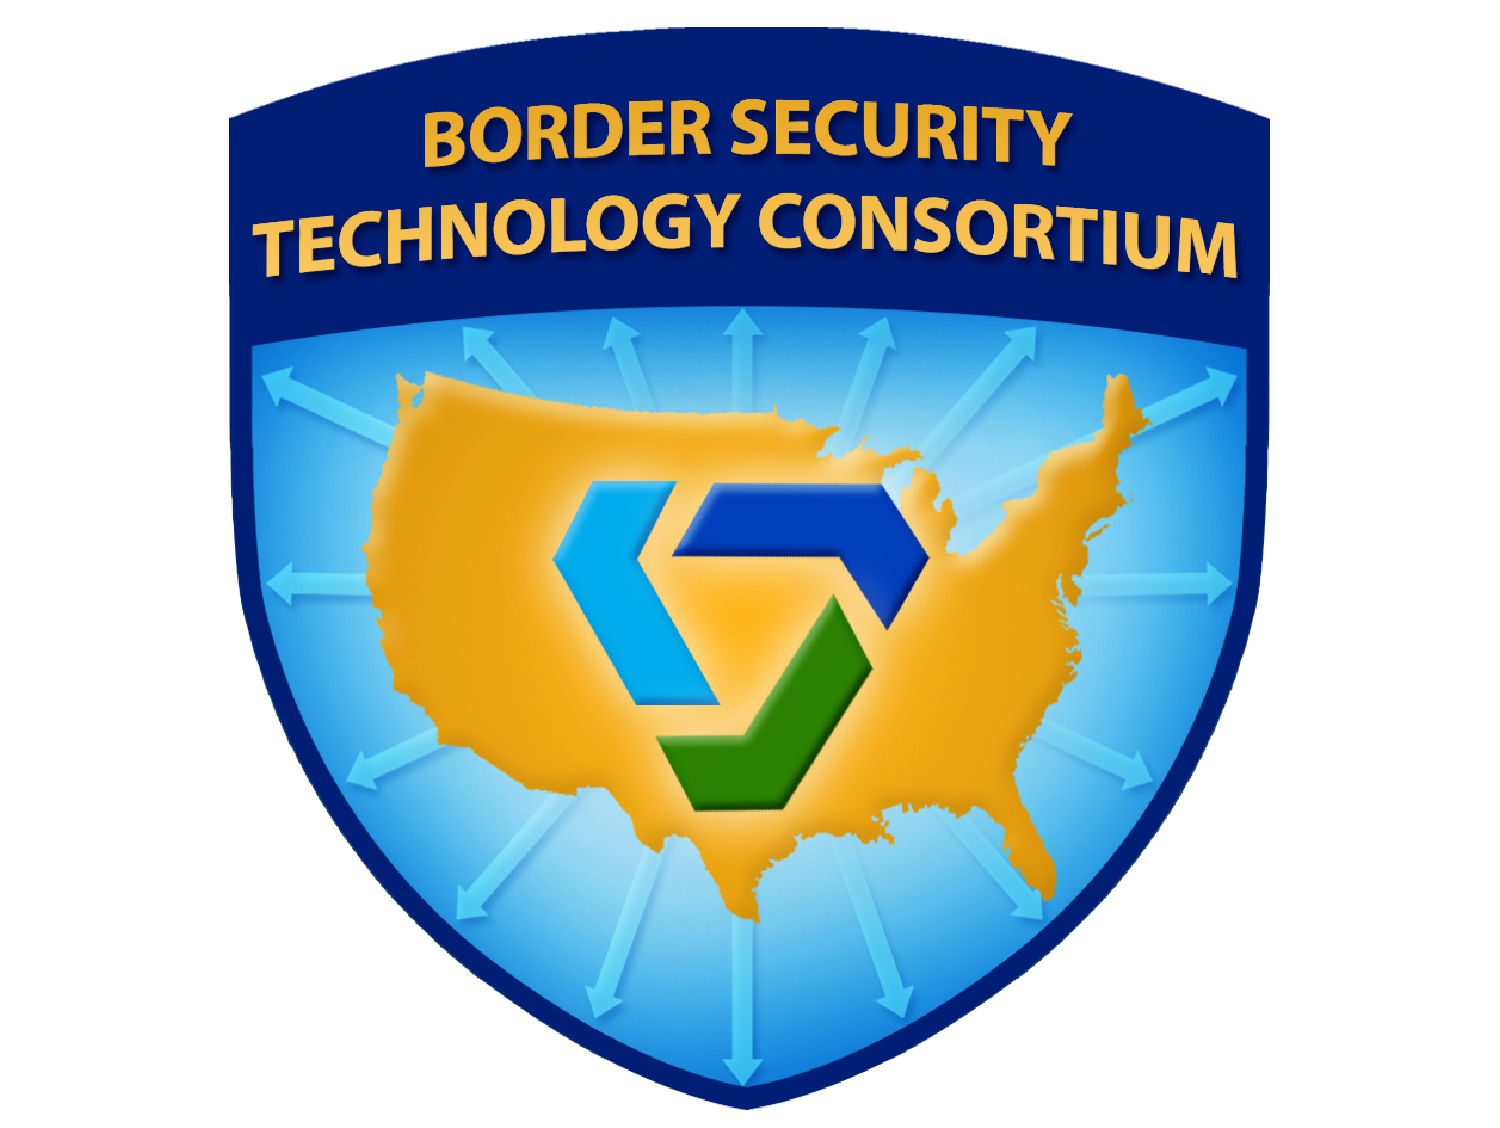 Border Security Technology Consortium logo